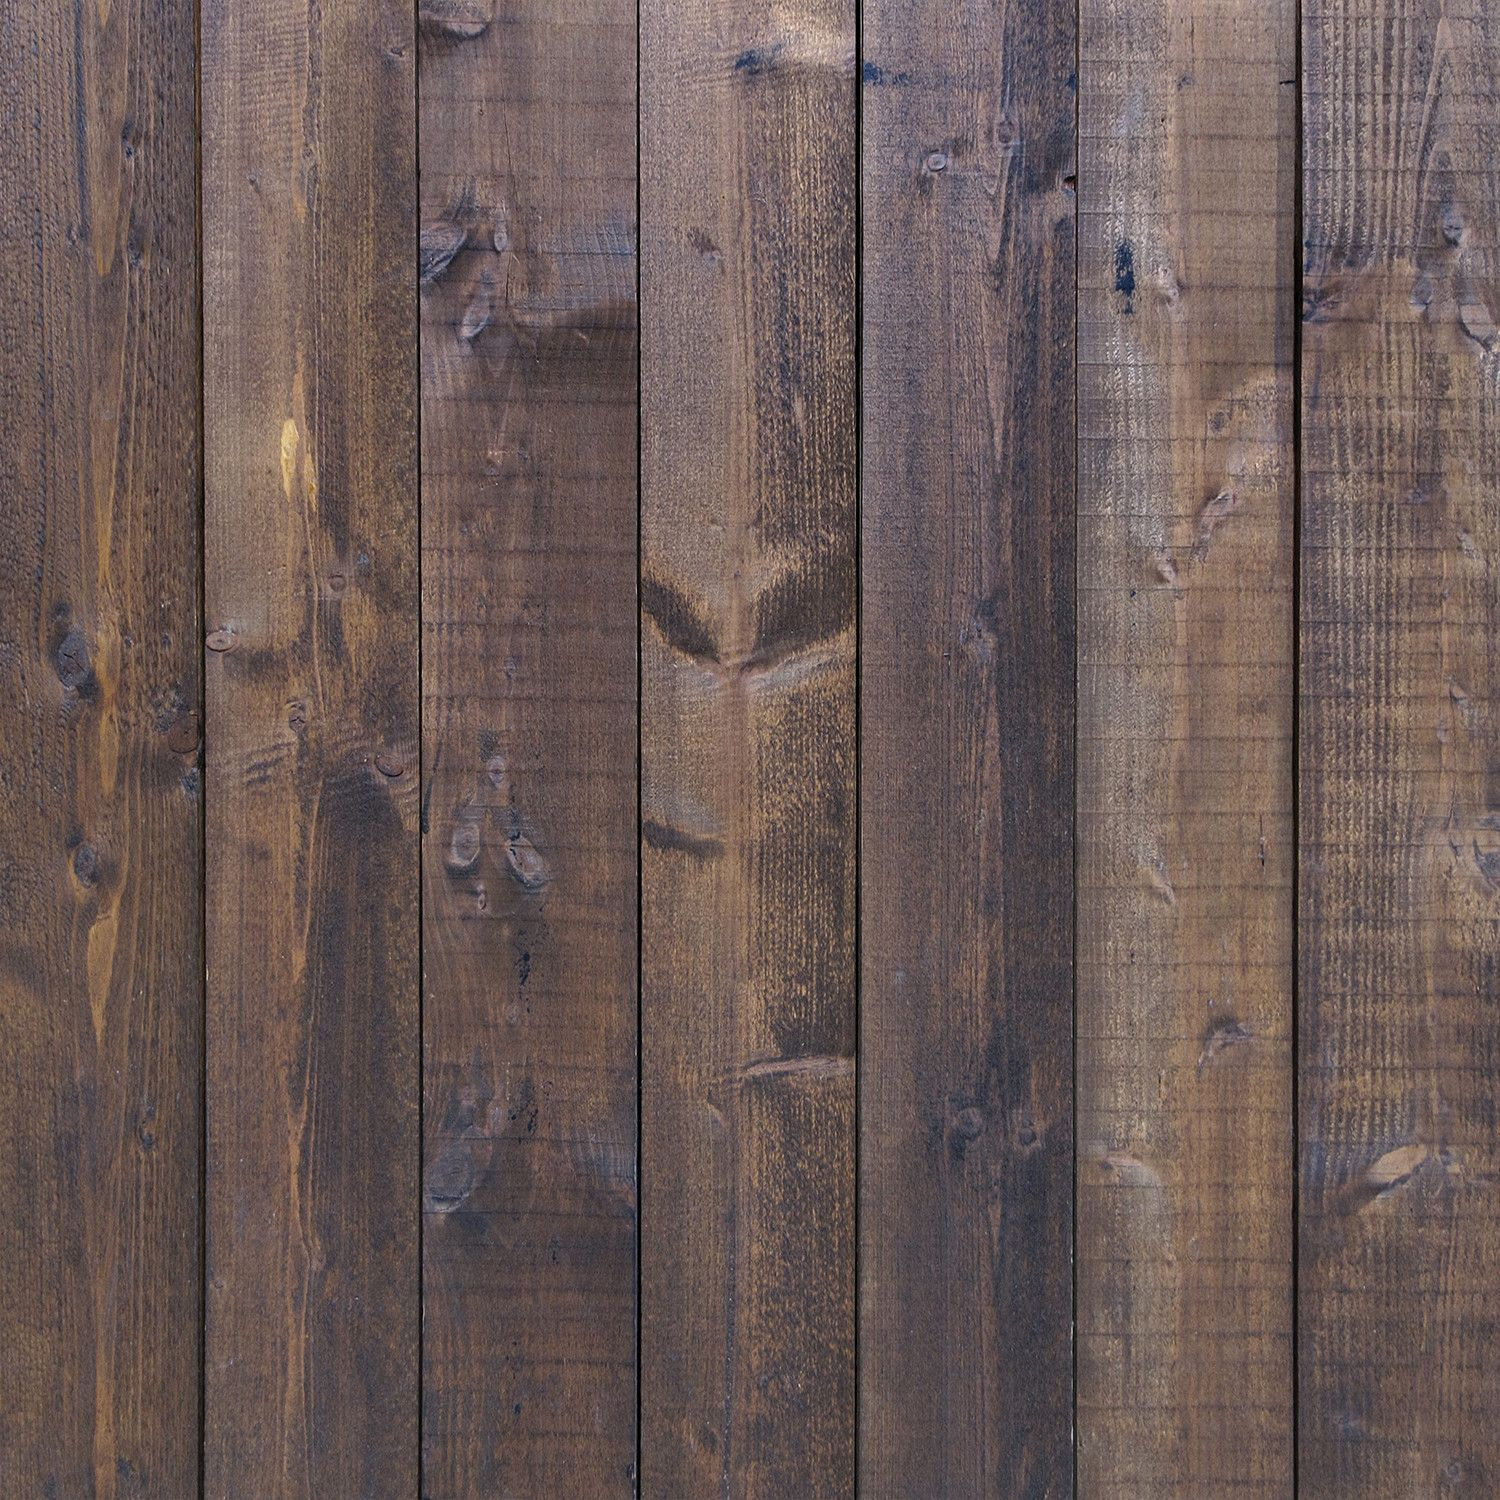 StudioPRO Vinyl Deep Brown Wood Floor Photography Backdrop Is The Best Choice When Showcasing